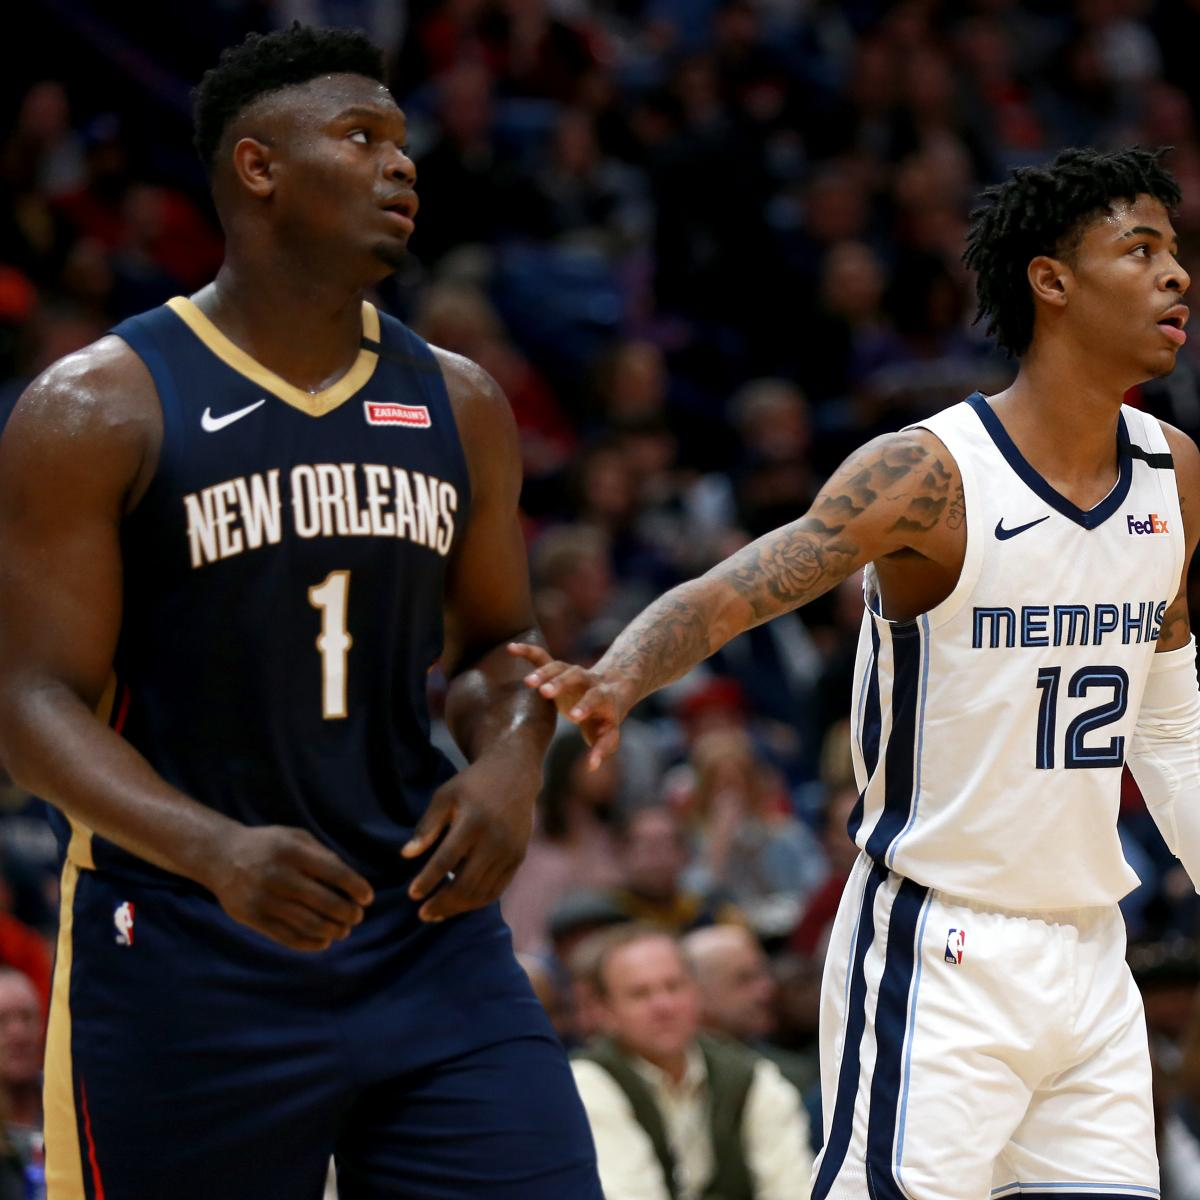 Ja Morant Named Unanimous NBA ROY over Zion Williamson in ESPN Survey